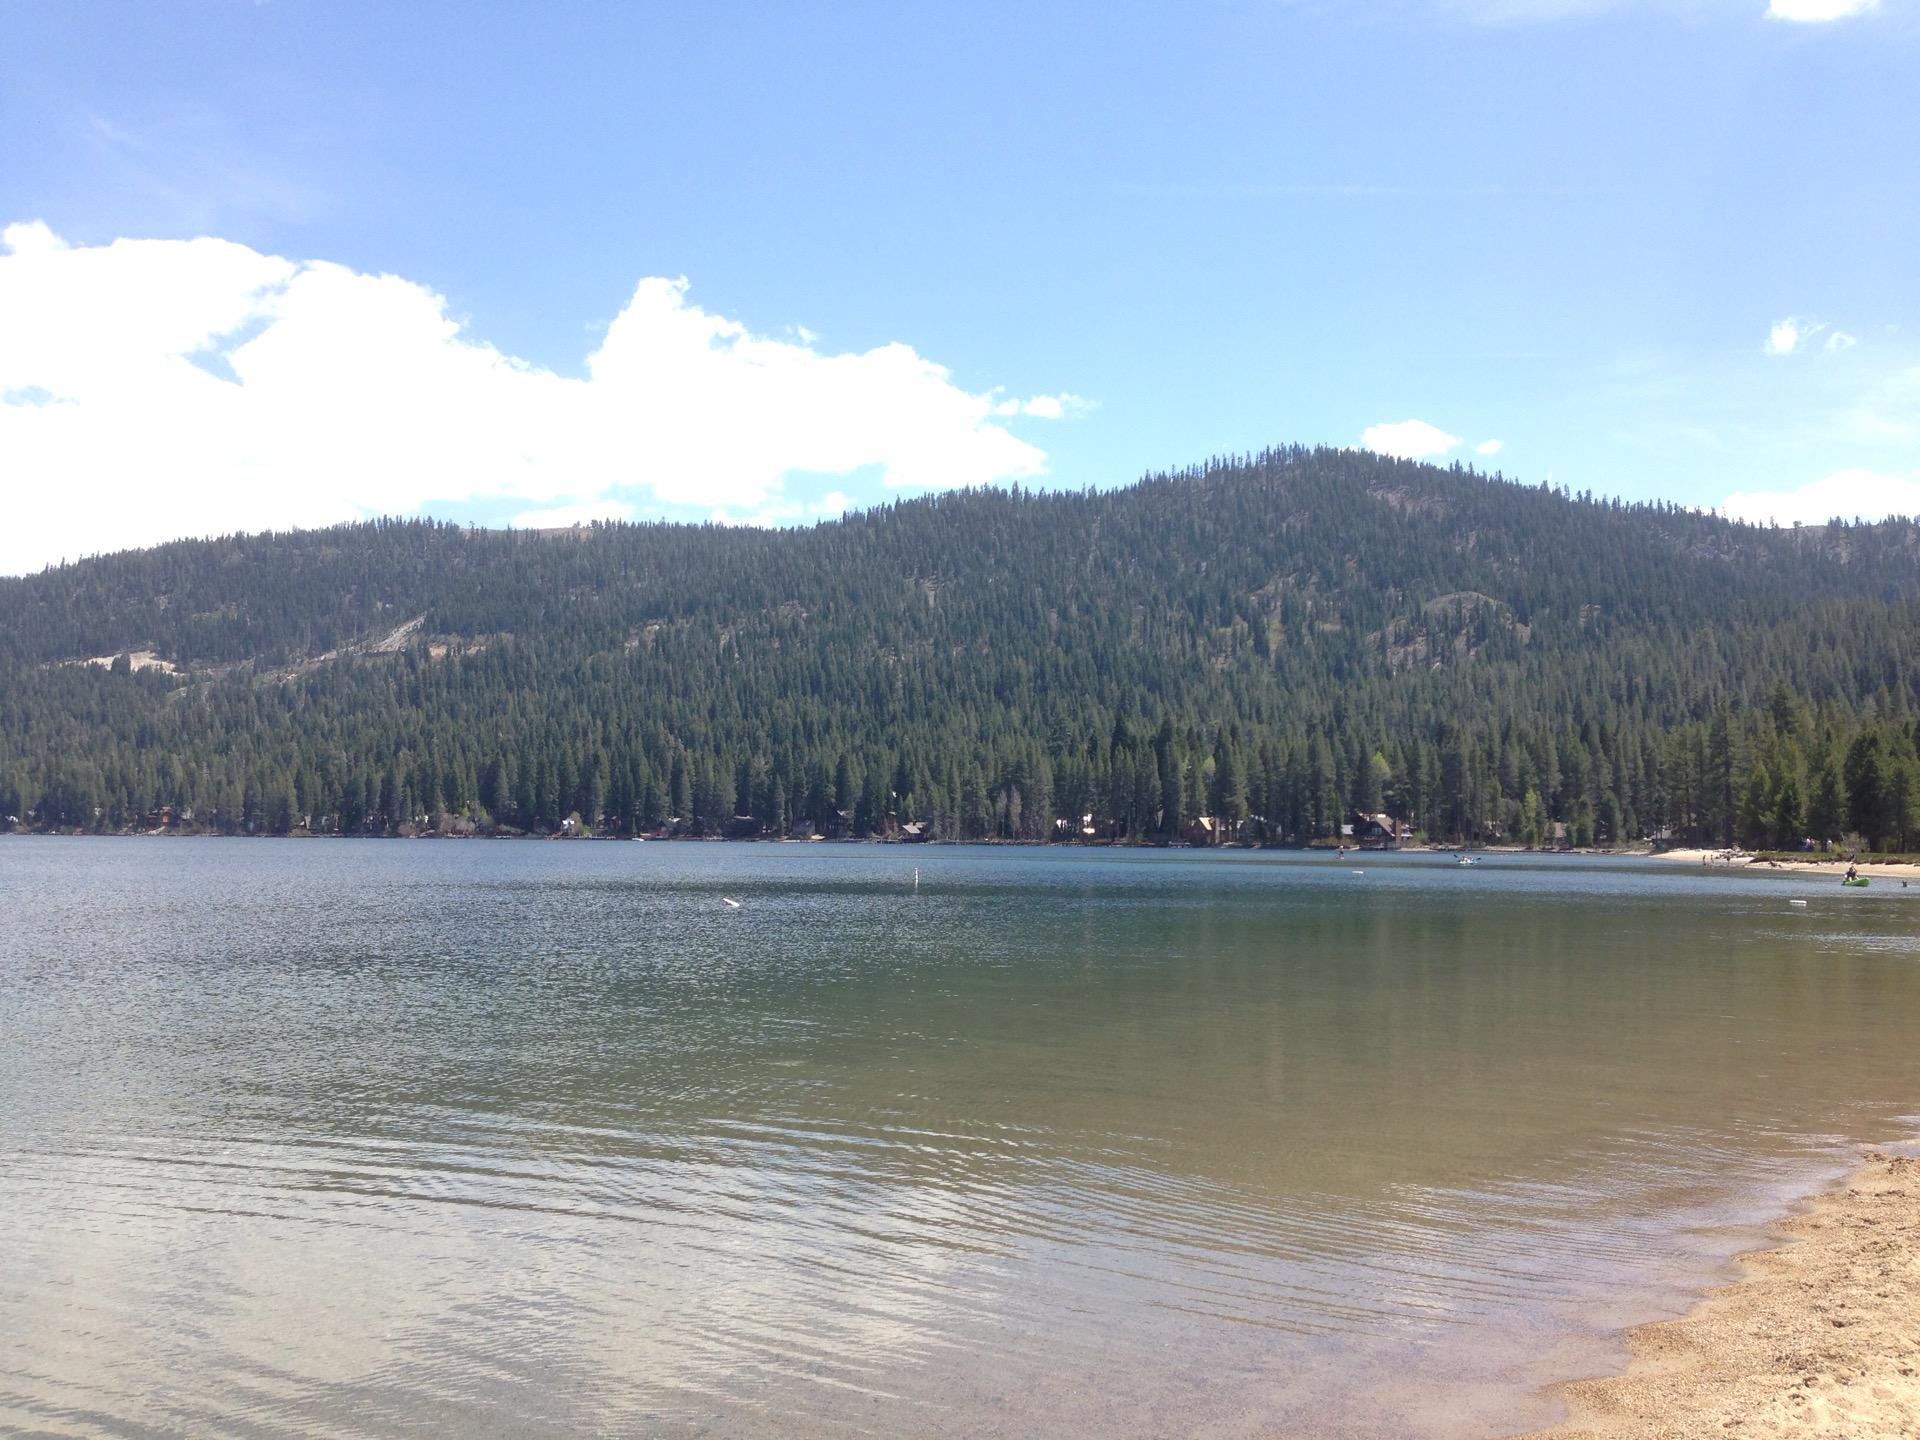 I'm at Donner Lake in Truckee, CA https://t.co/BRMKQ1jojG http://t.co/WzmJNqiGb8